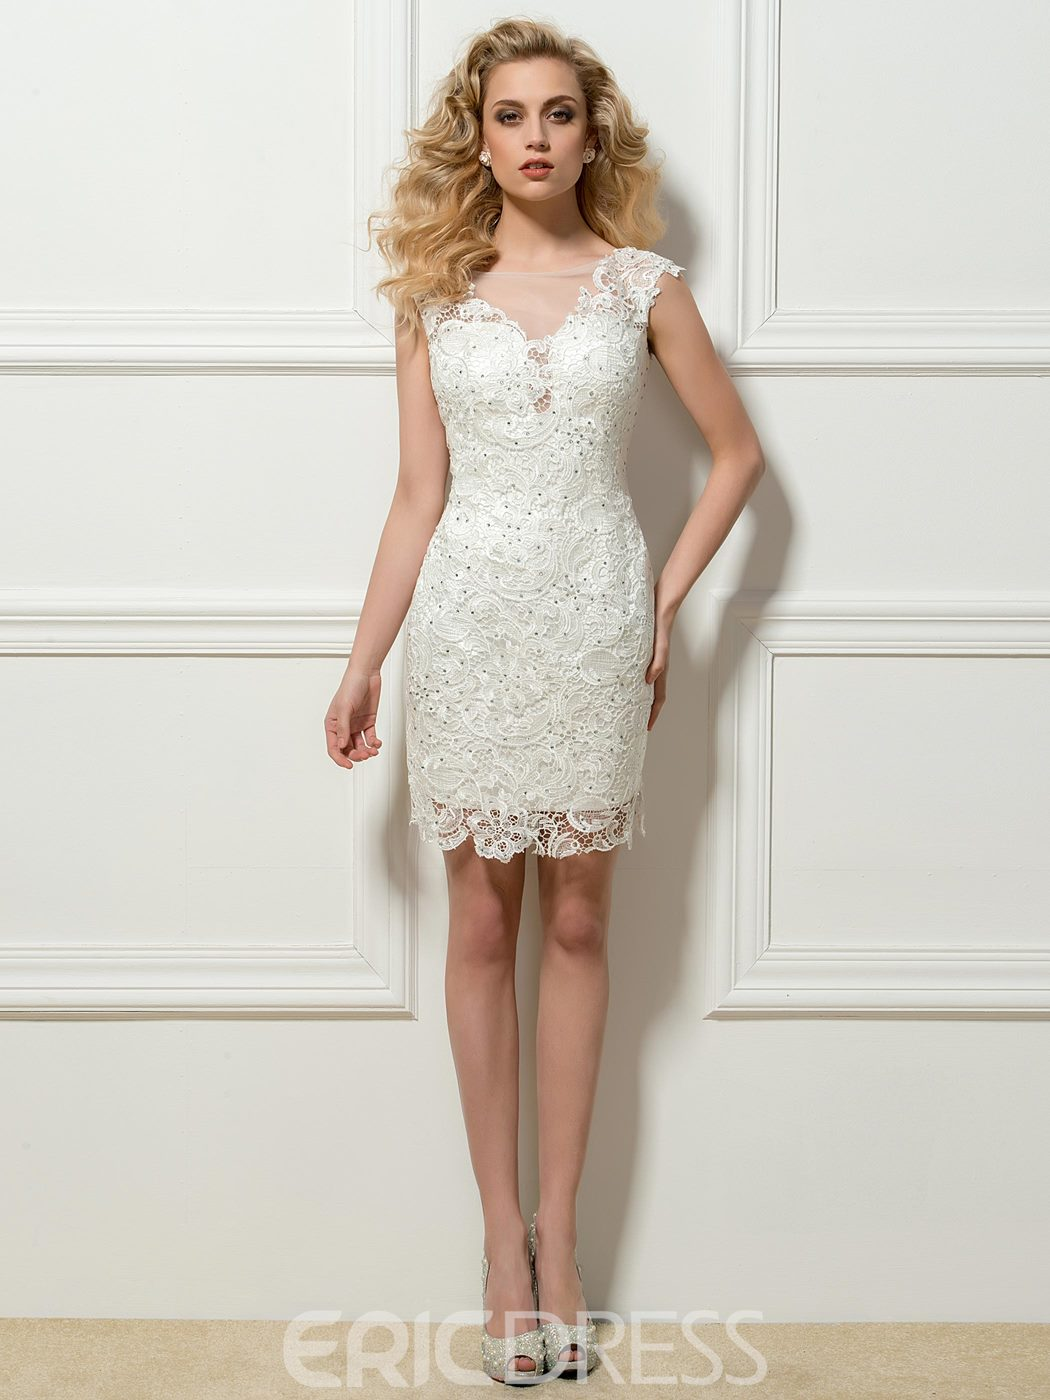 Ericdress Sheath Lace Short Cocktail Dress